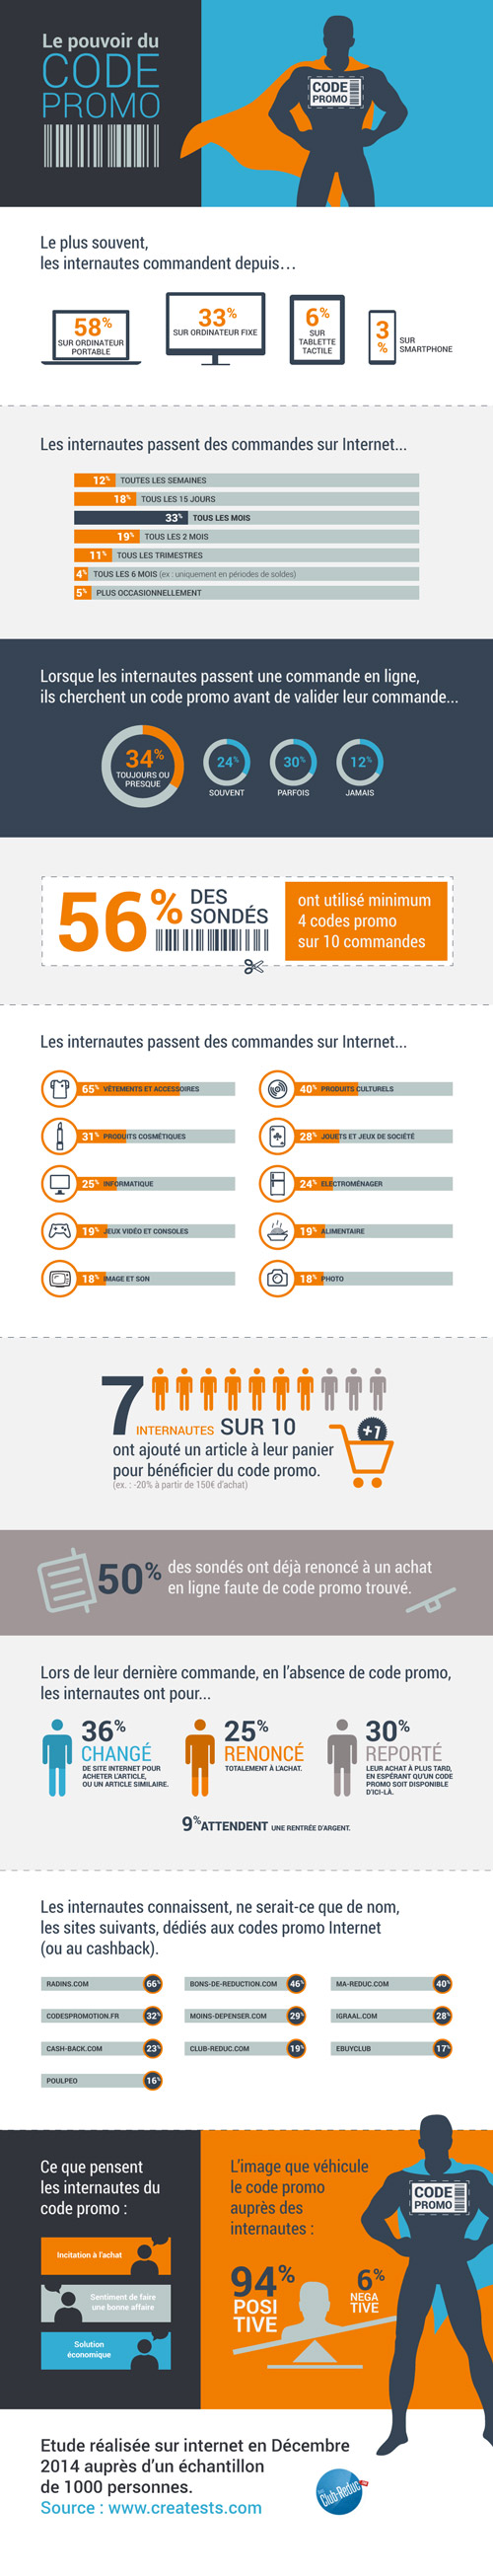 Infographie-code-promo-clubreduc